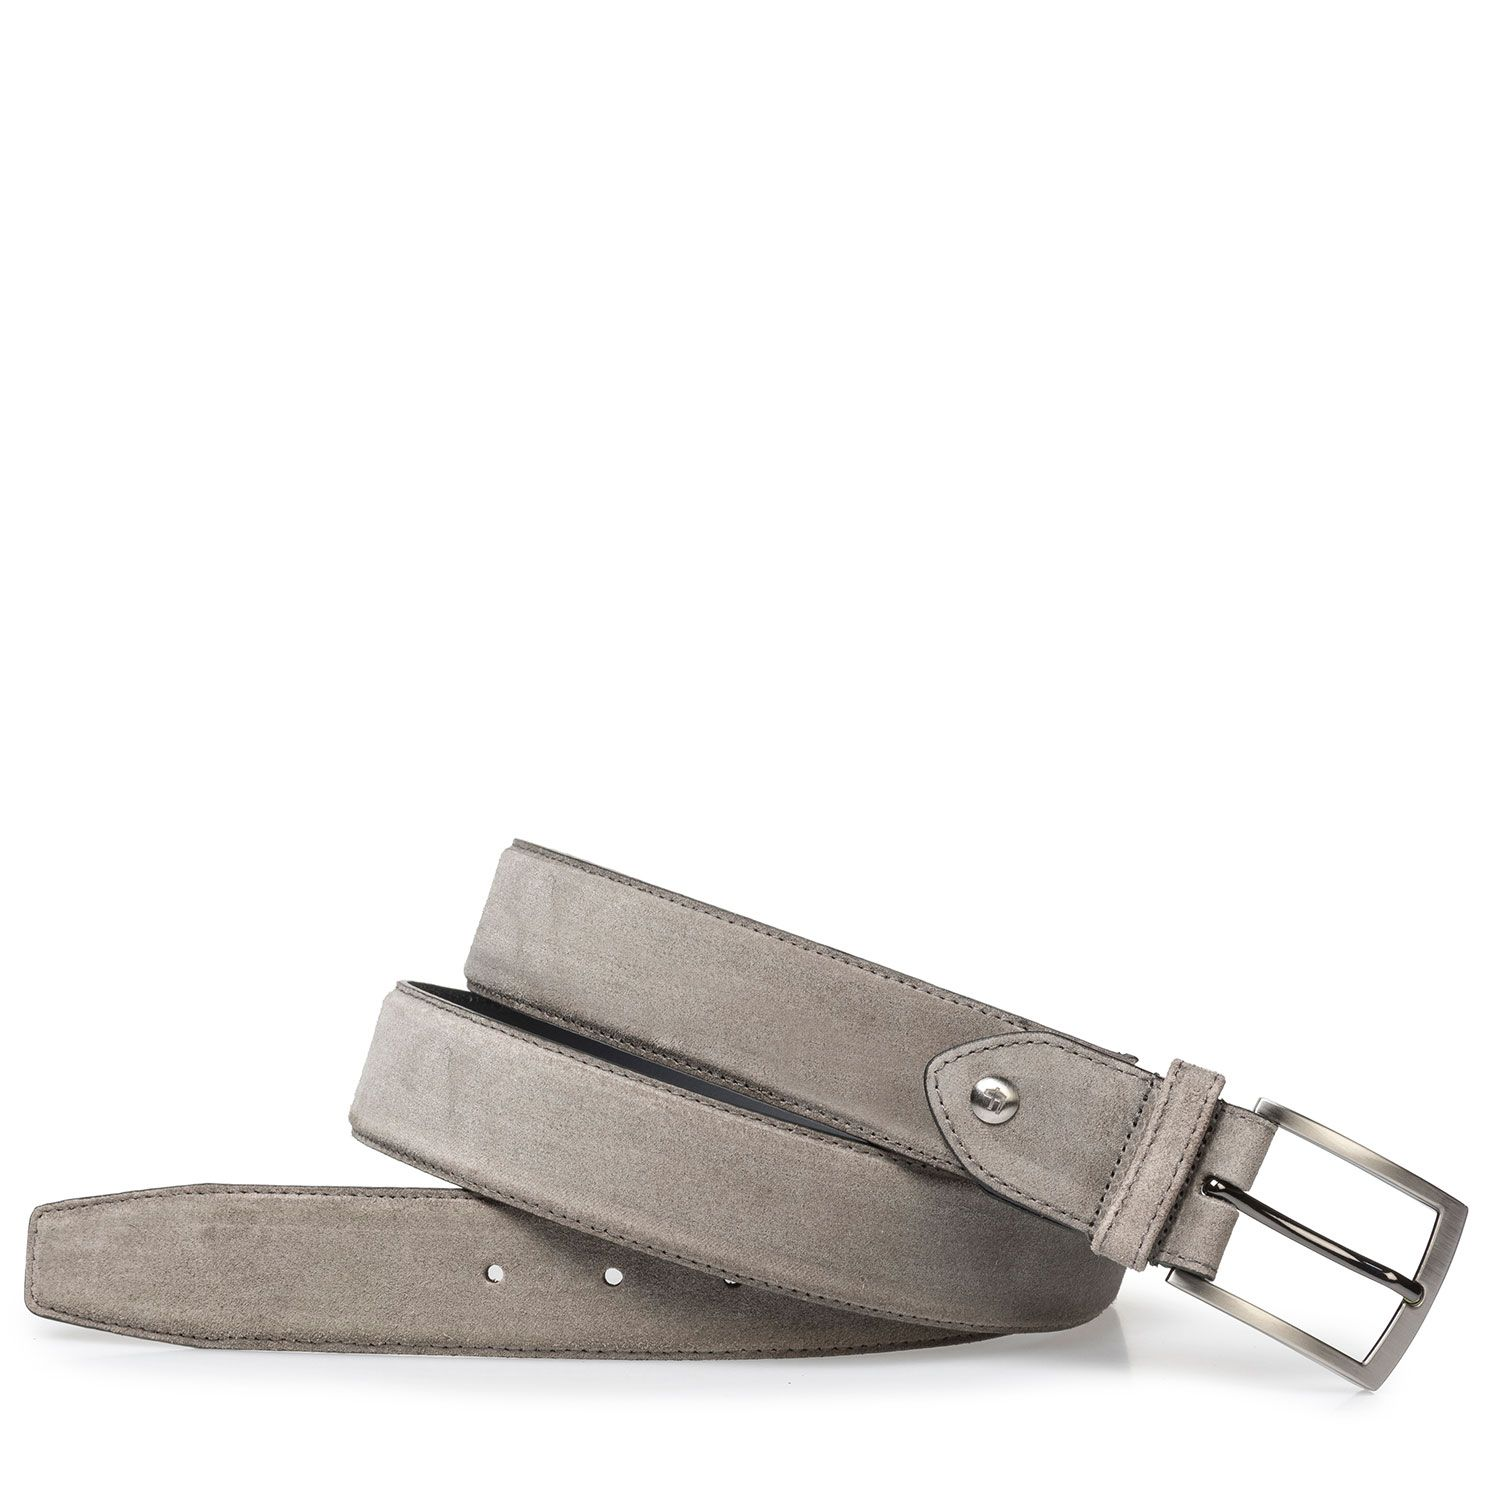 75200/44 - Lightly buffed, taupe-colored suede leather belt